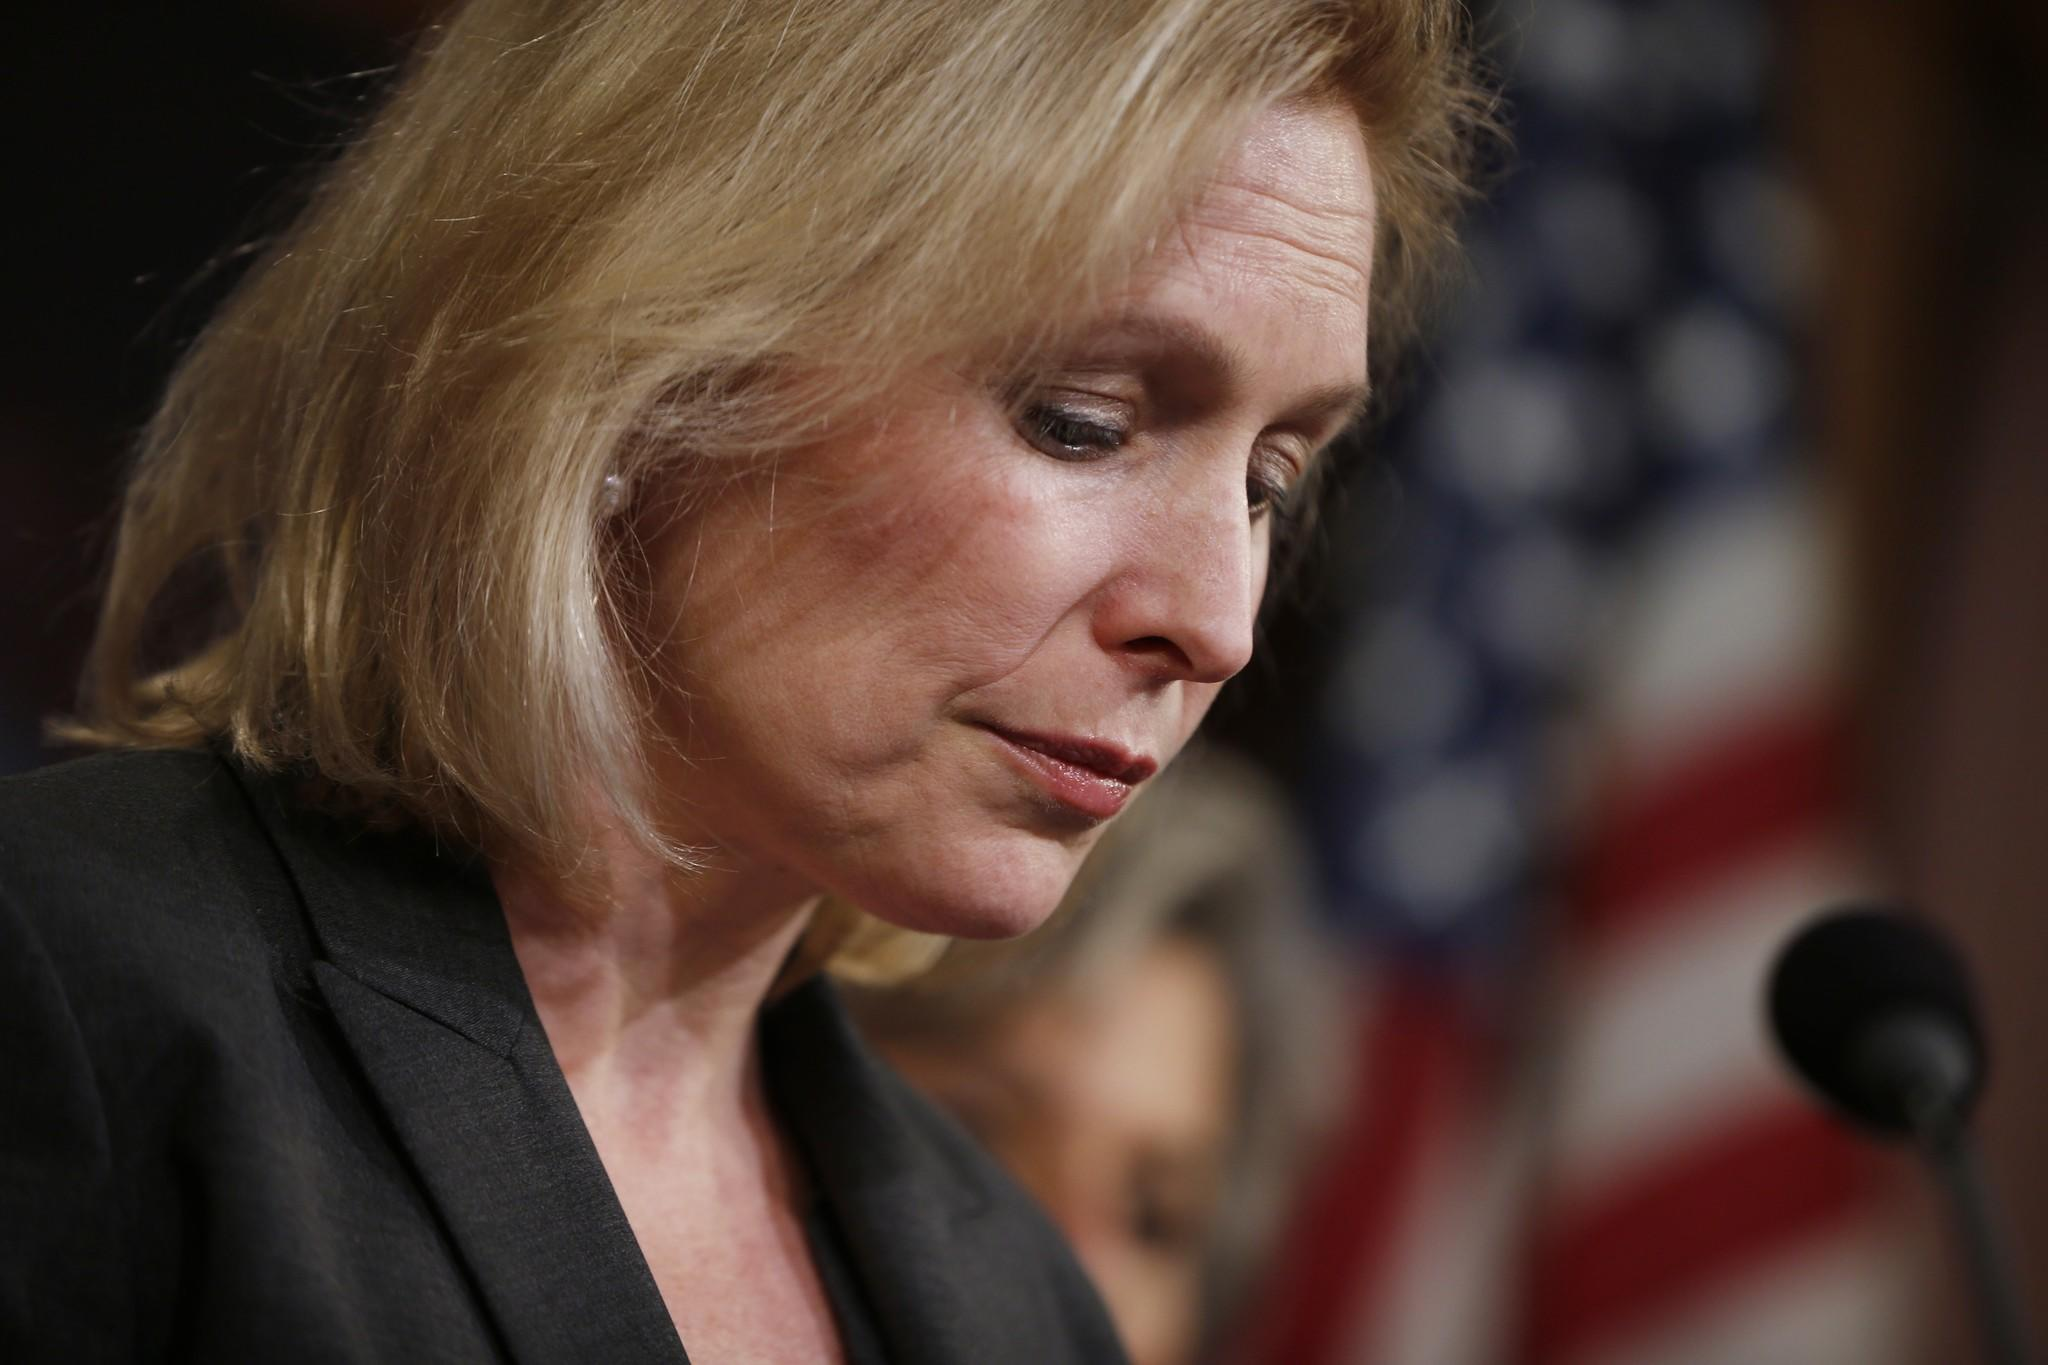 A bill seeking to stem the rise of sexual assaults in the military died Thursday after senators from both parties voted it down. Sen. Kirsten Gillibrand (D-N.Y.) pushed the issue to prominence during this congressional session.